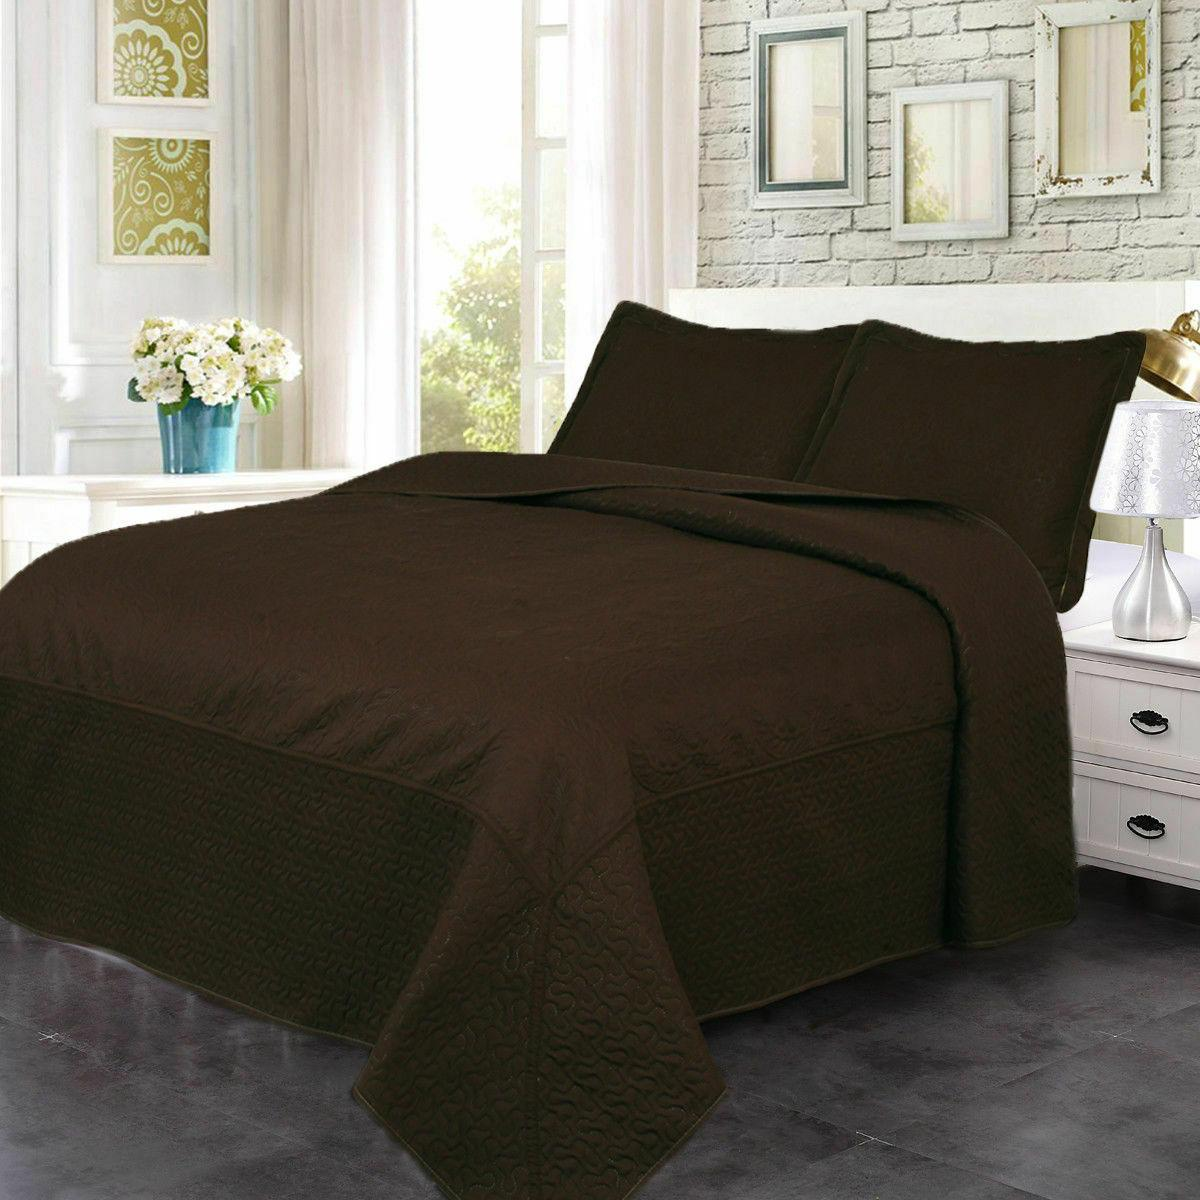 Quilt Stitched Embossed Pattern Bedspread Microfiber Coverlet